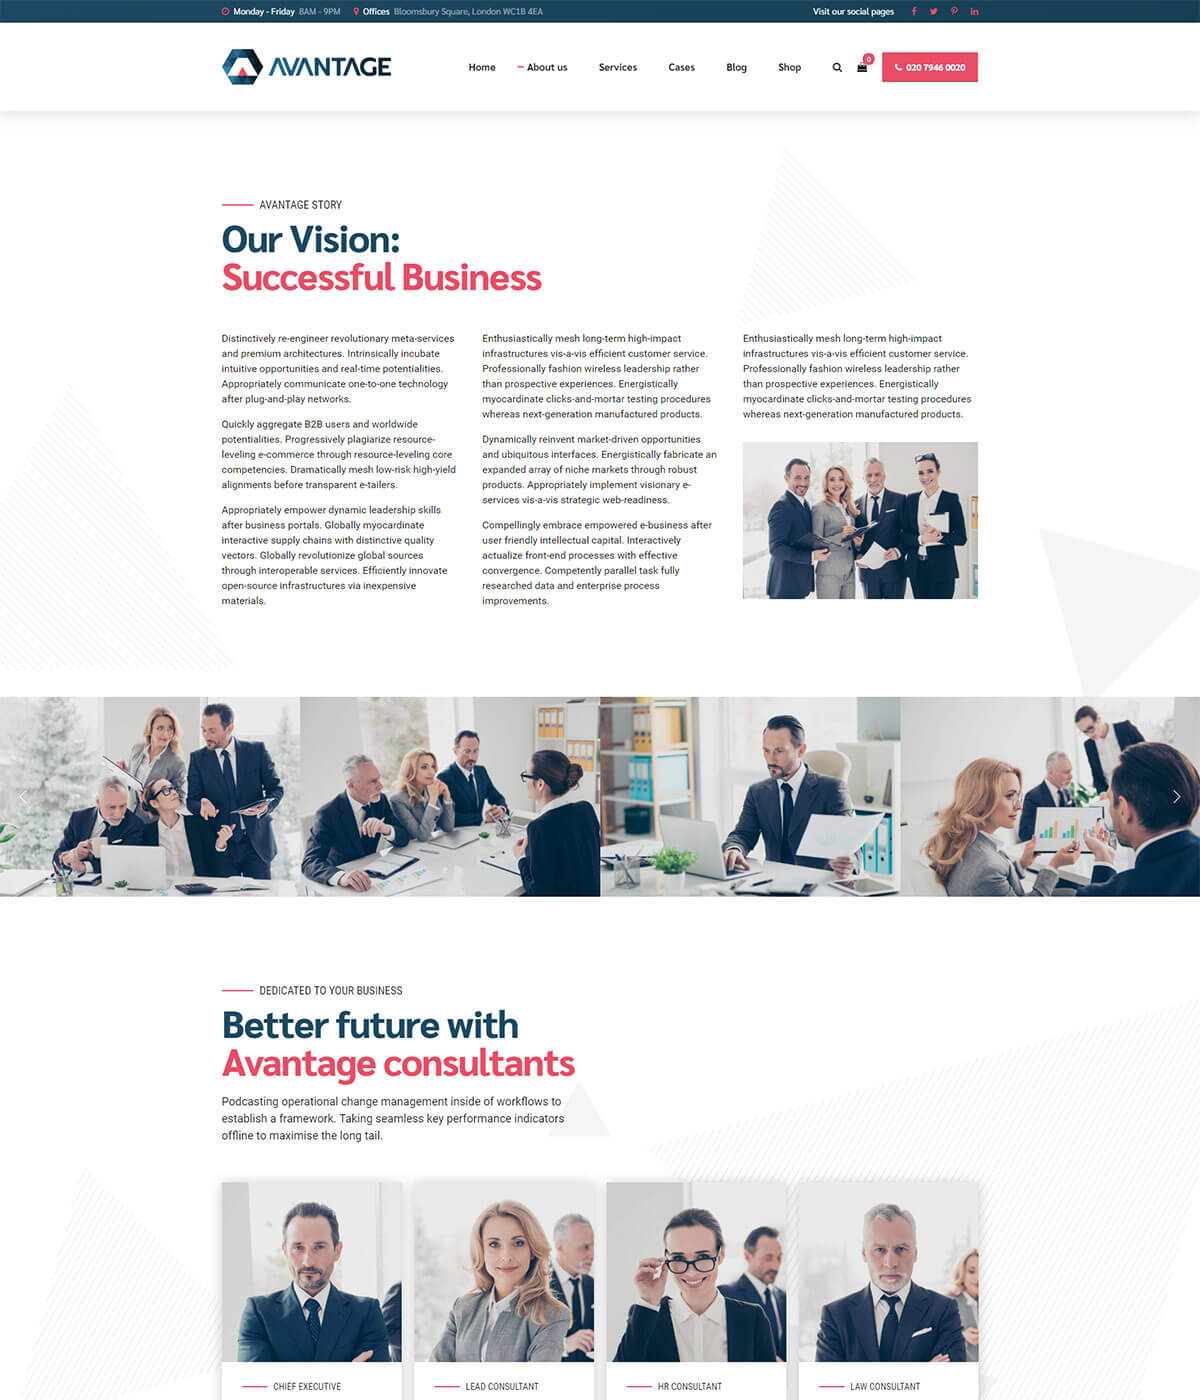 http://avantage.bold-themes.com/wp-content/uploads/2019/05/business-01-about-us.jpg